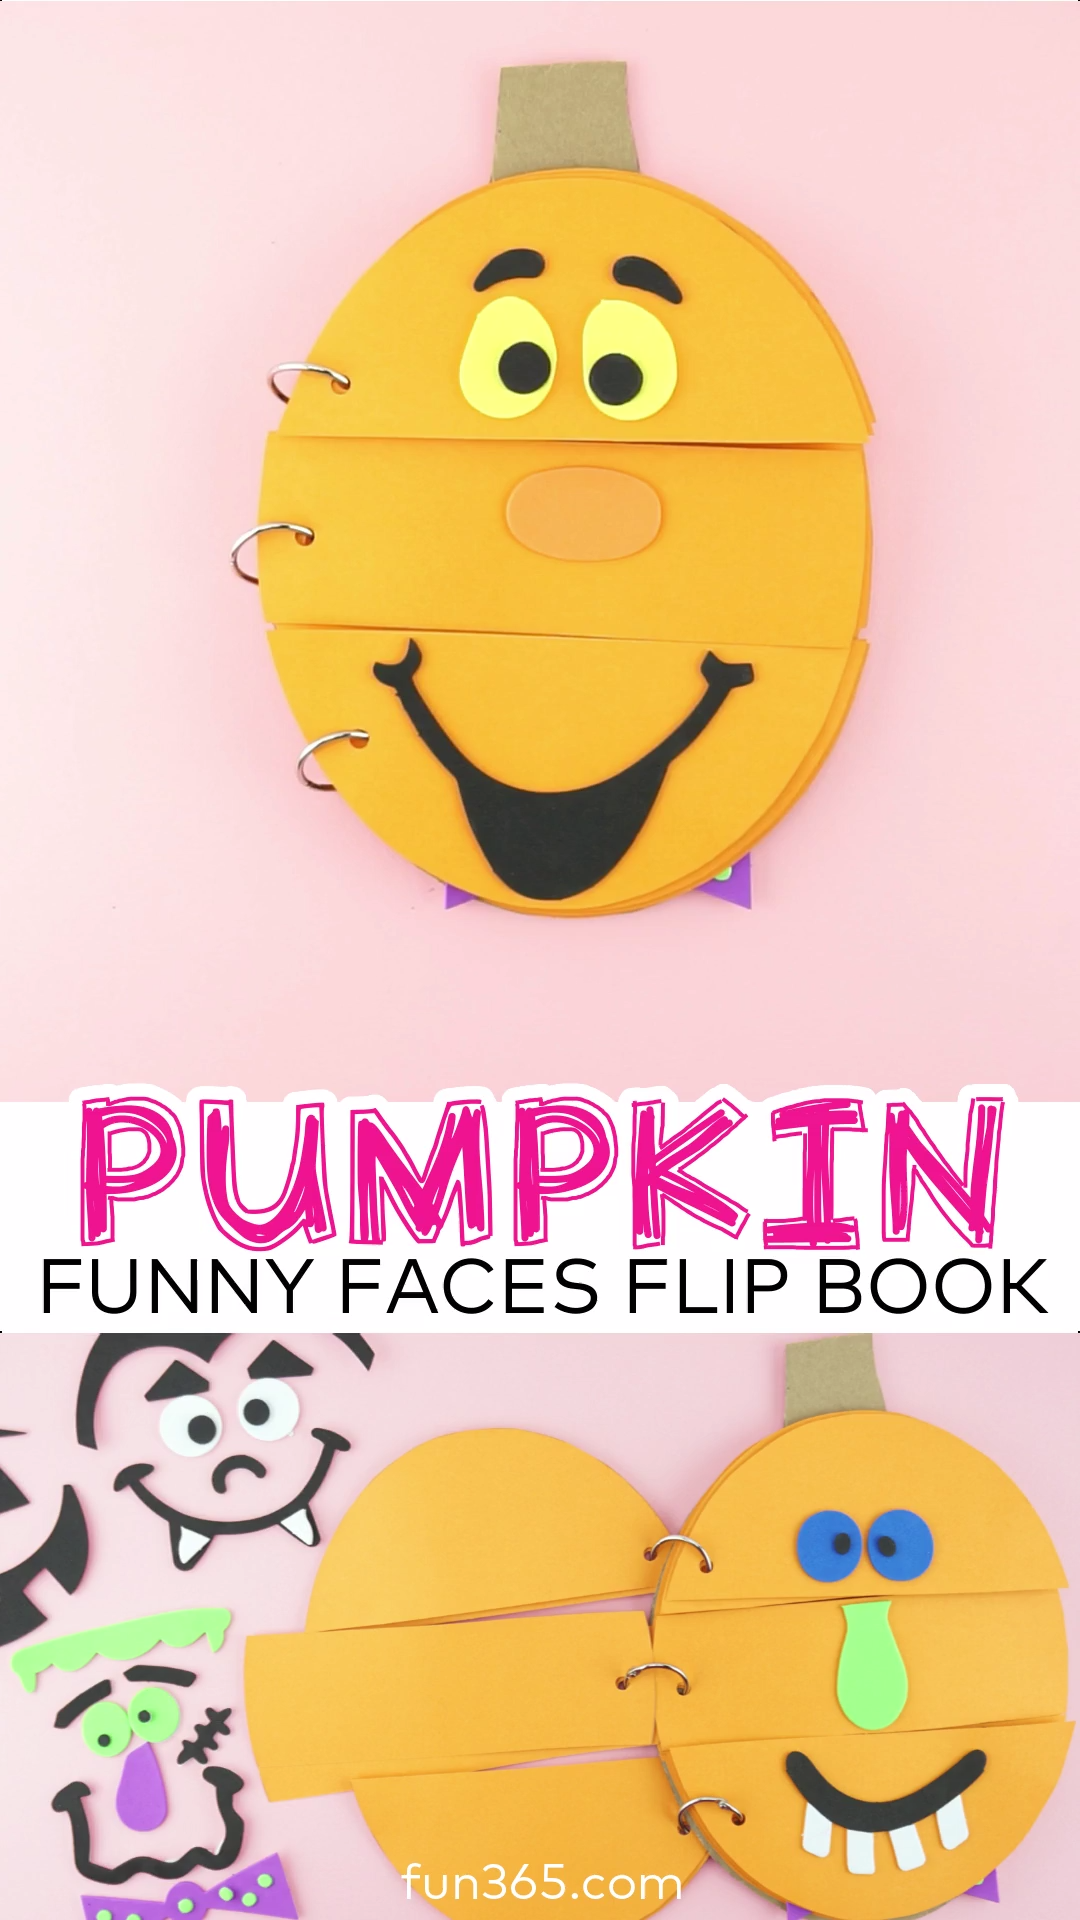 Pumpkin Funny Faces Flip Book